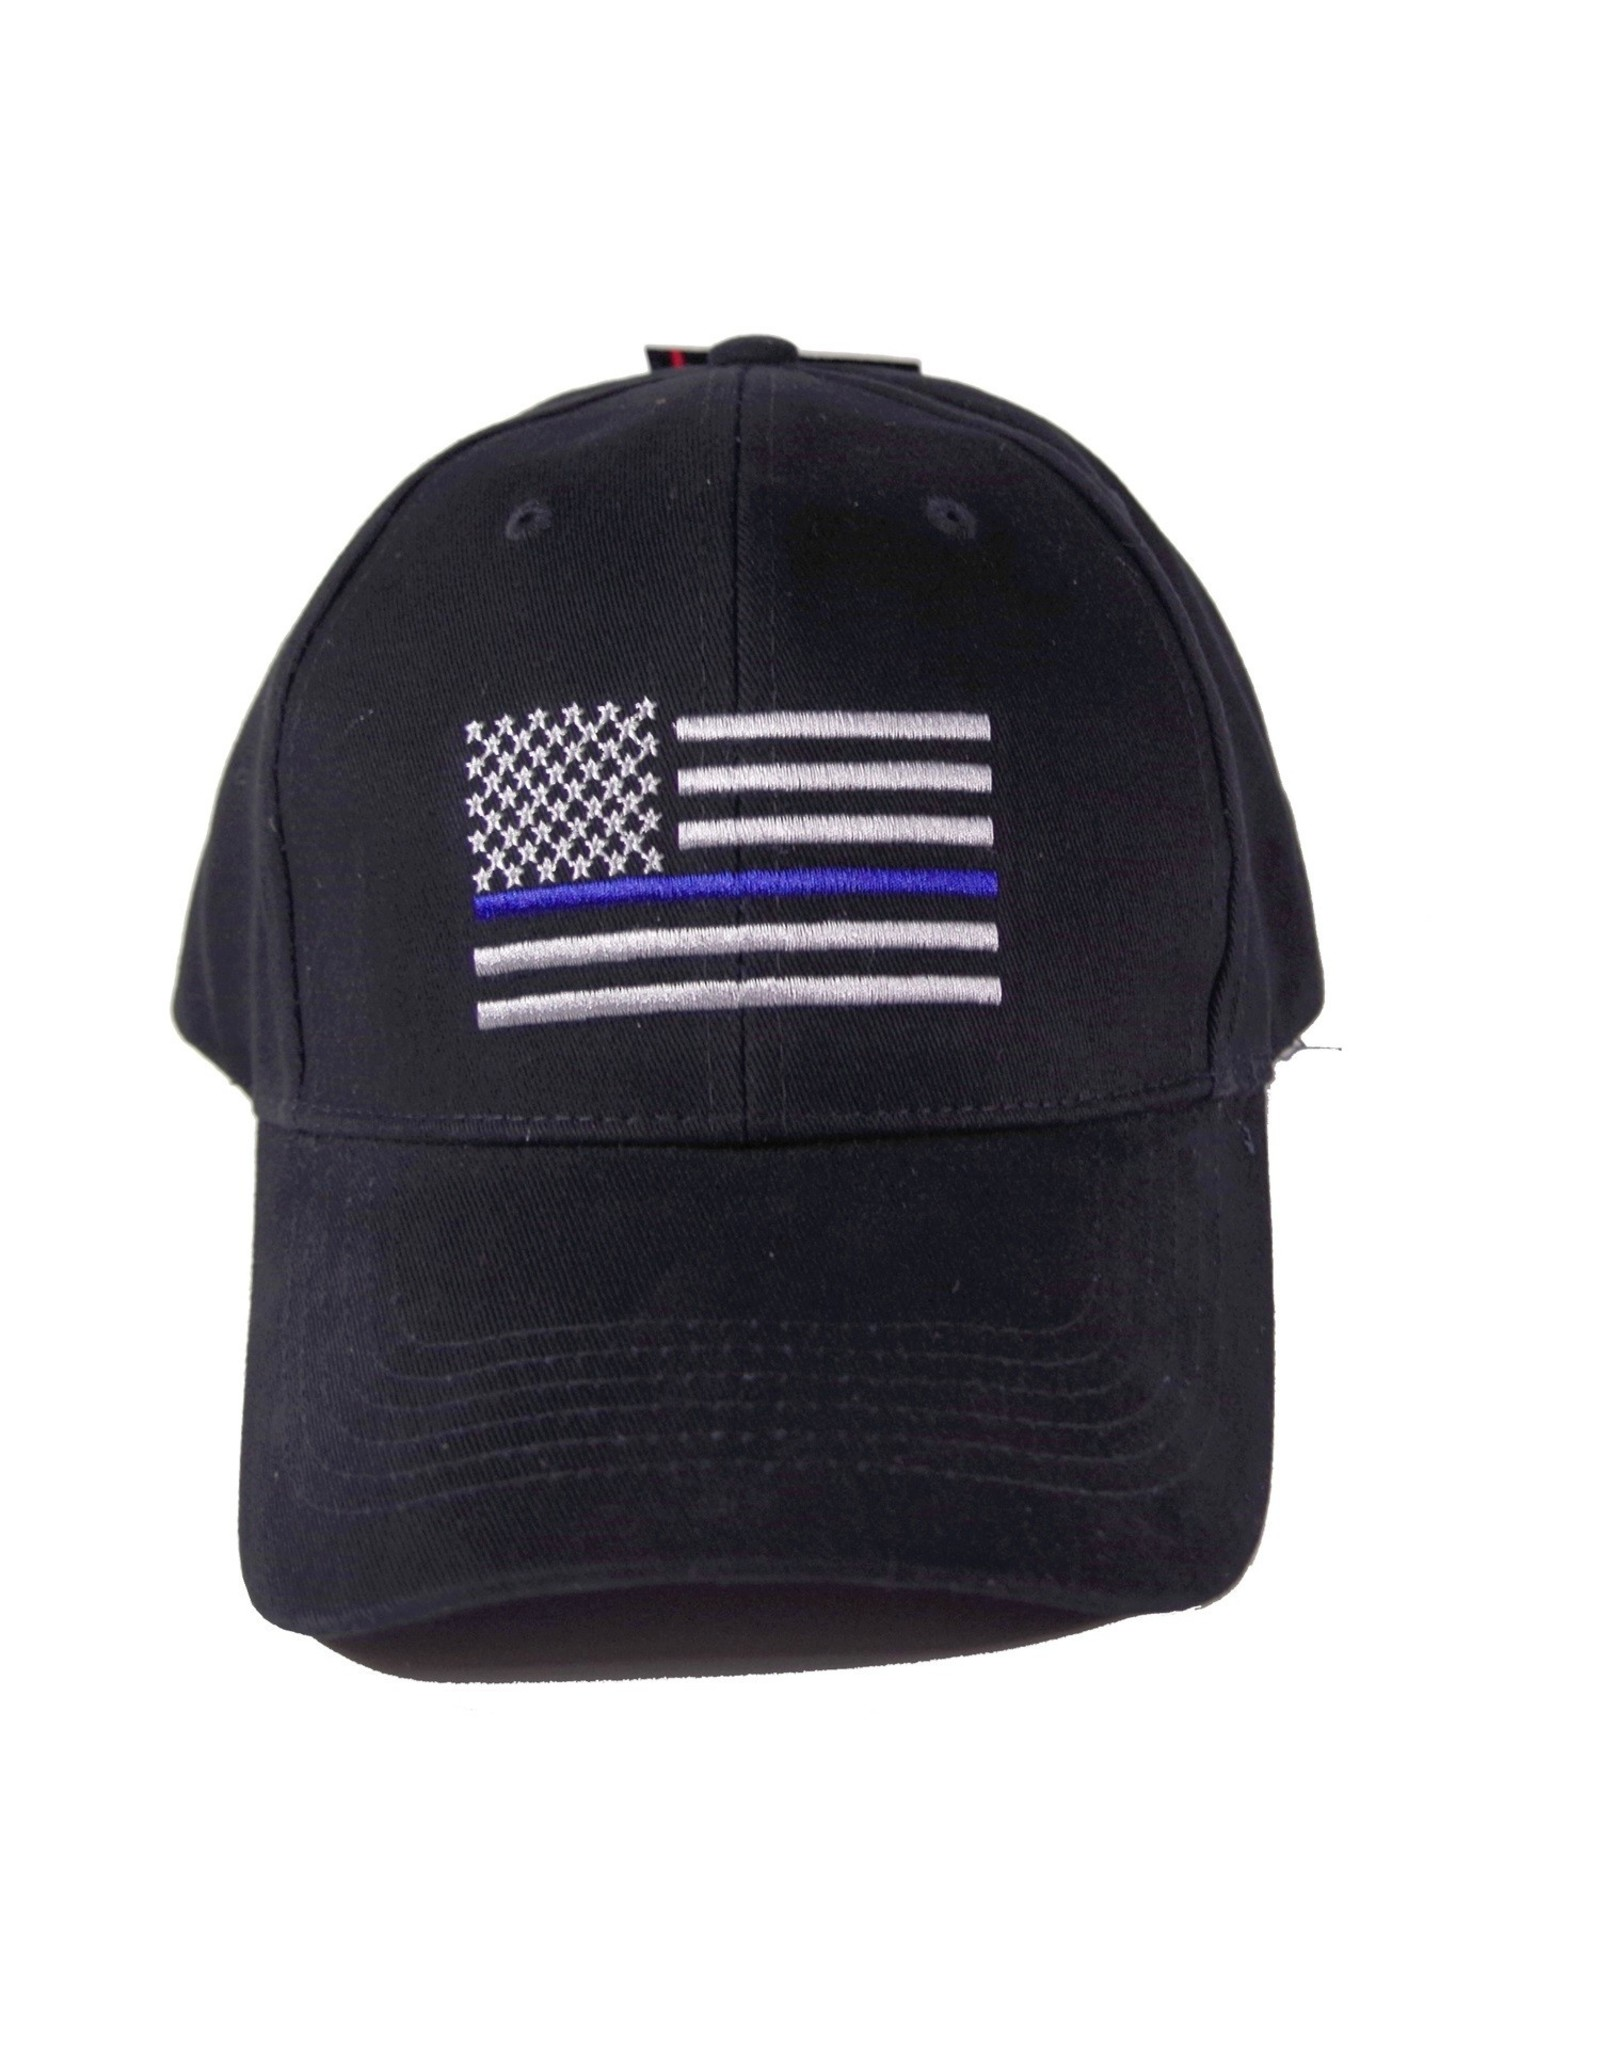 Blue Line Flag-Embroidered Black Cap